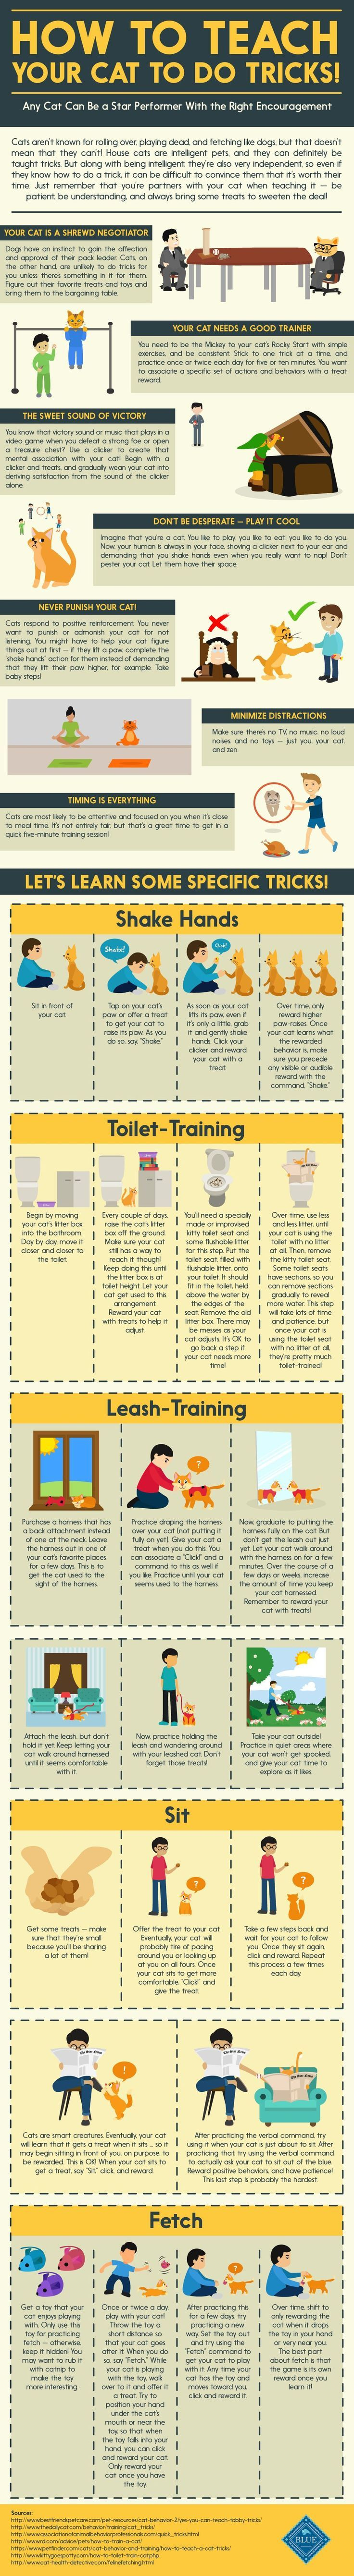 How to Teach Your Cat to do Tricks #Infographic #Cats #HowTo #Pets